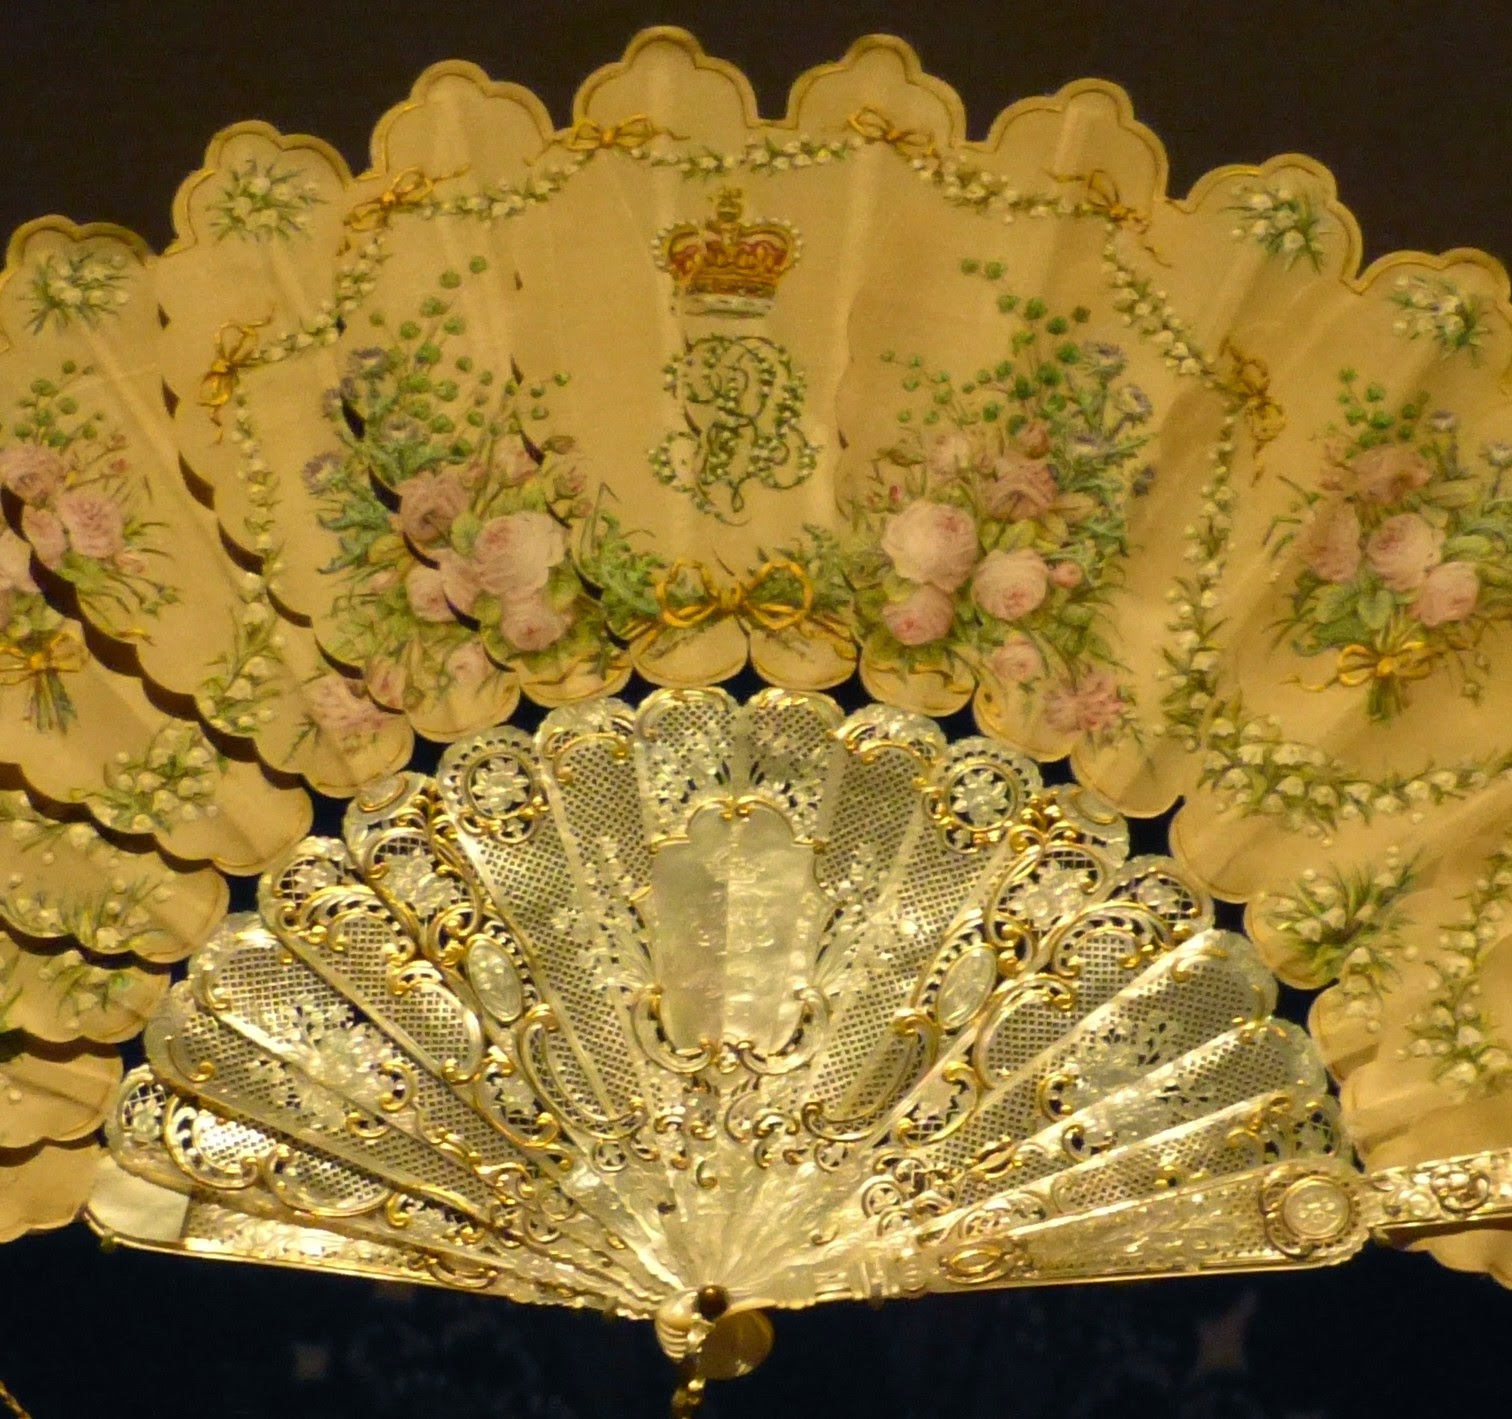 Detail from Queen Victoria's birthday fan (c1858)